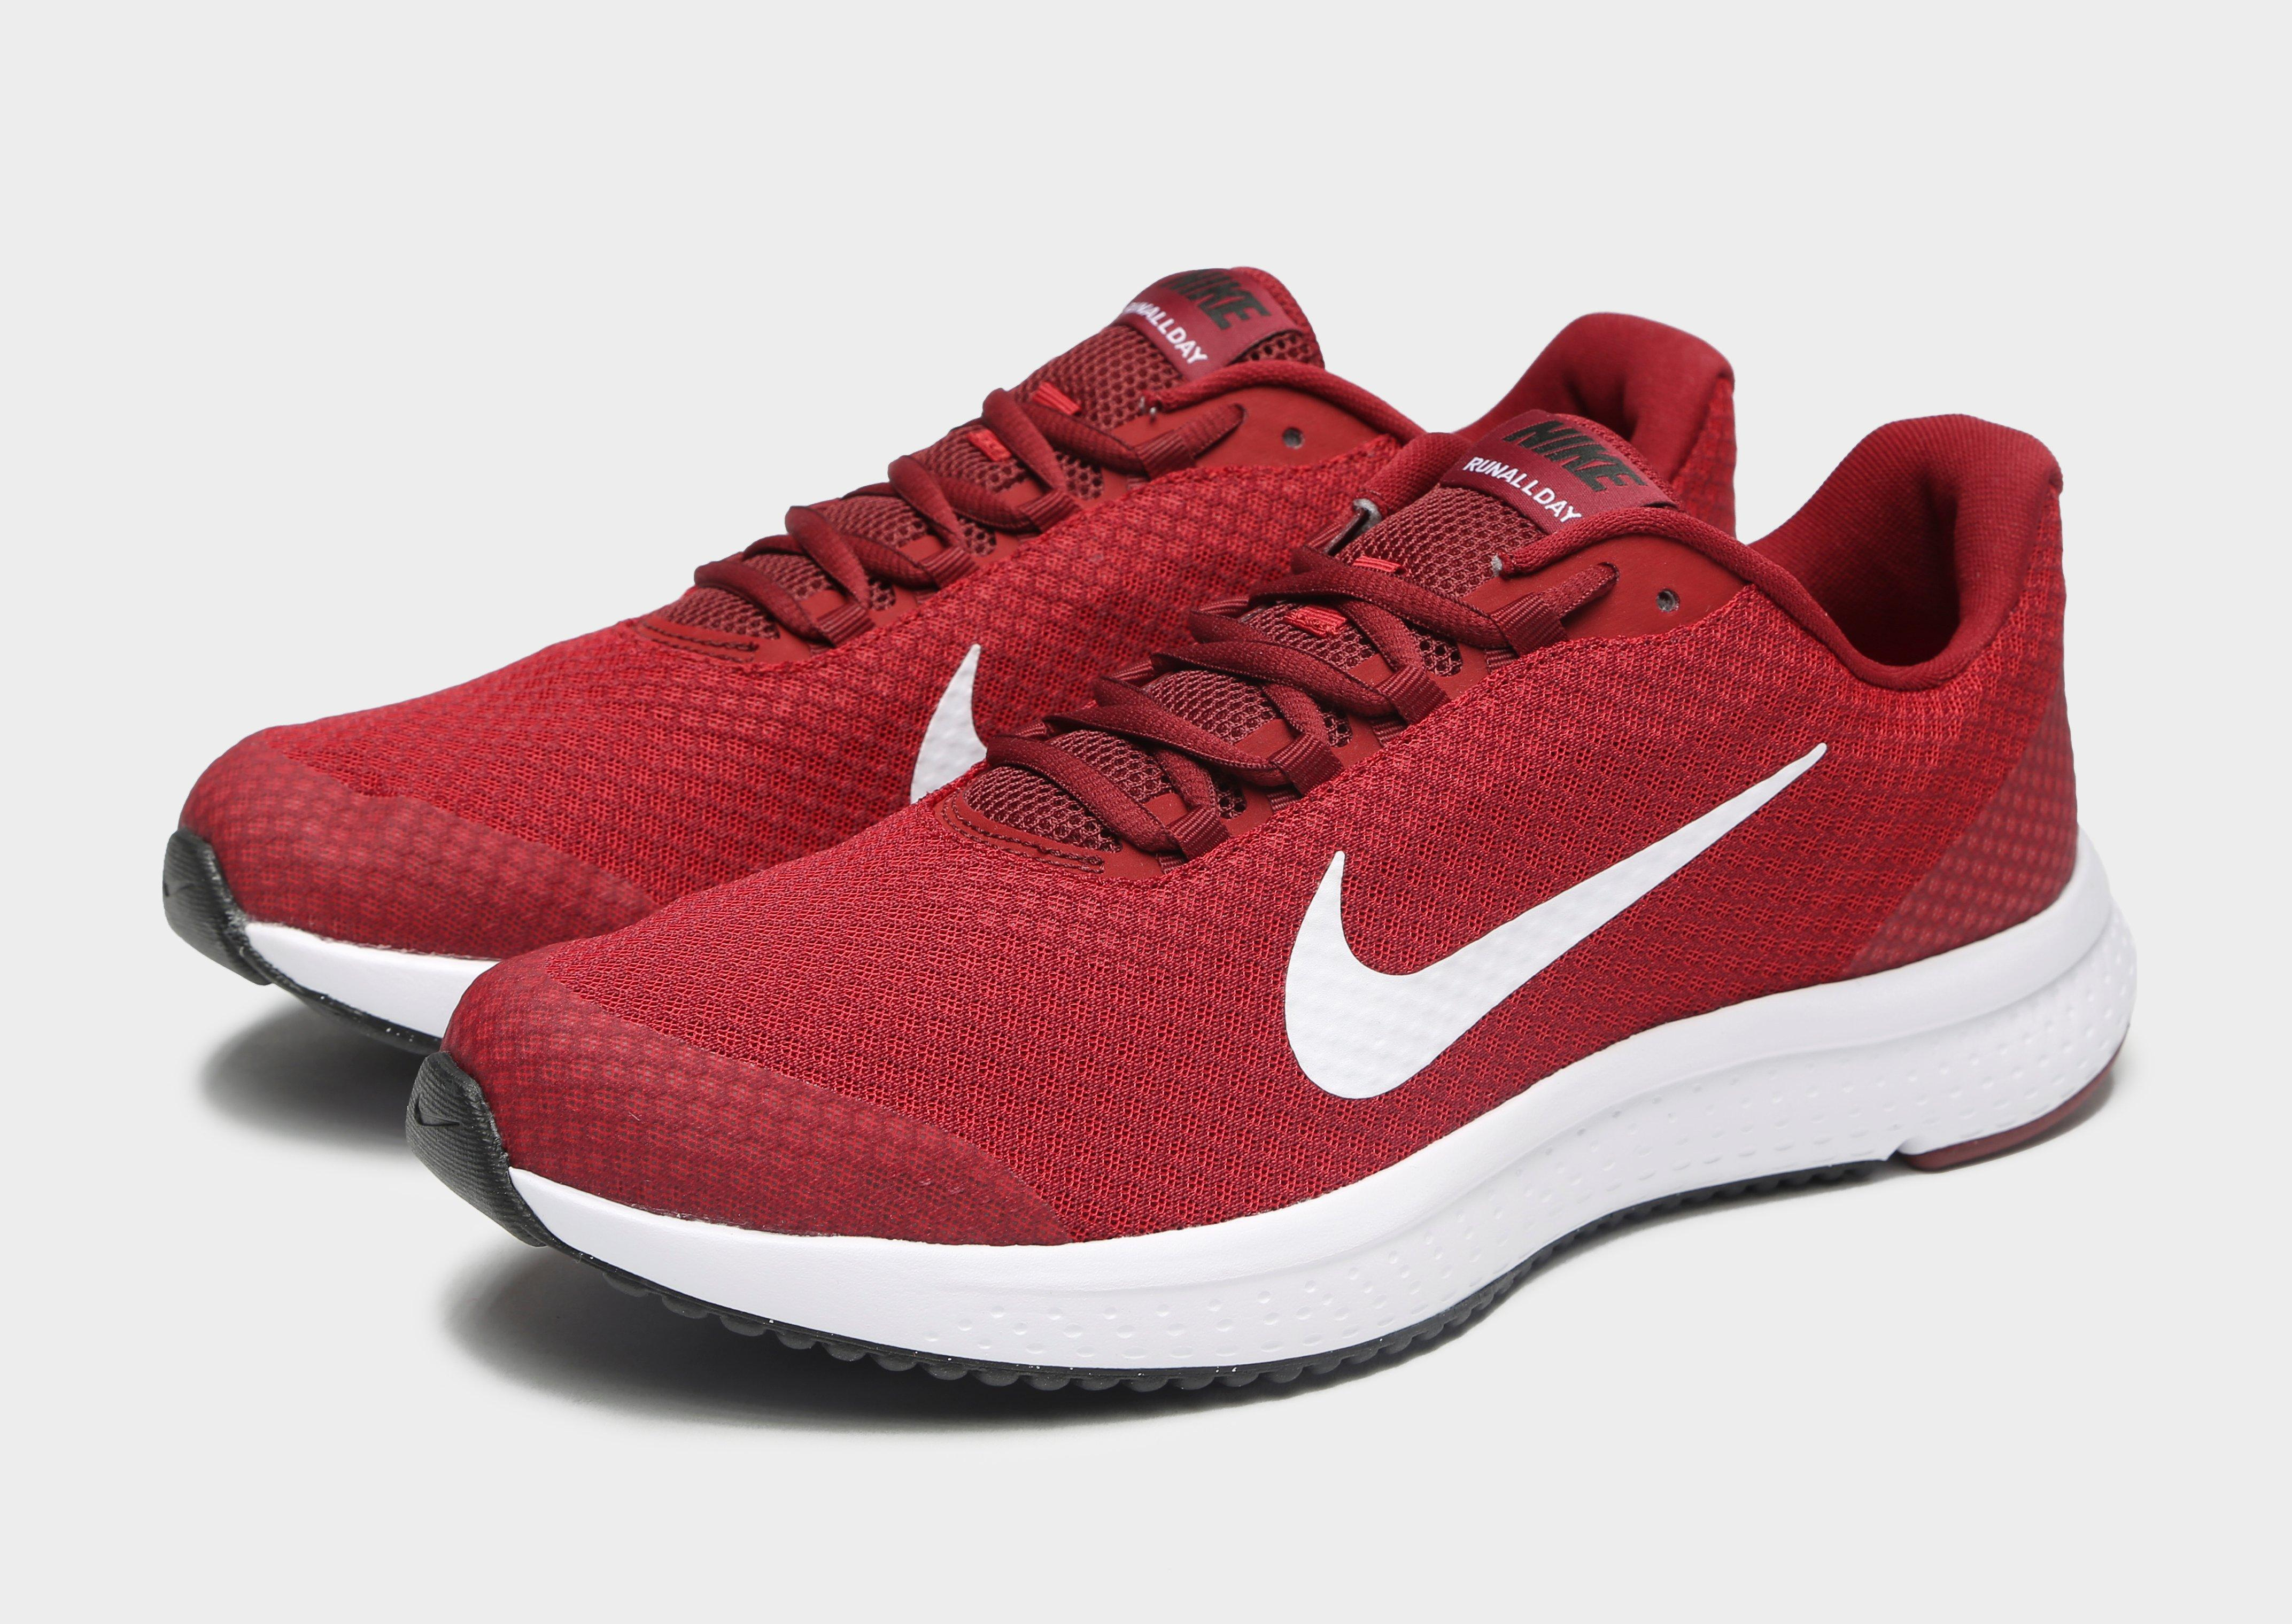 Nike Synthetic Run All Day 2 in Red for